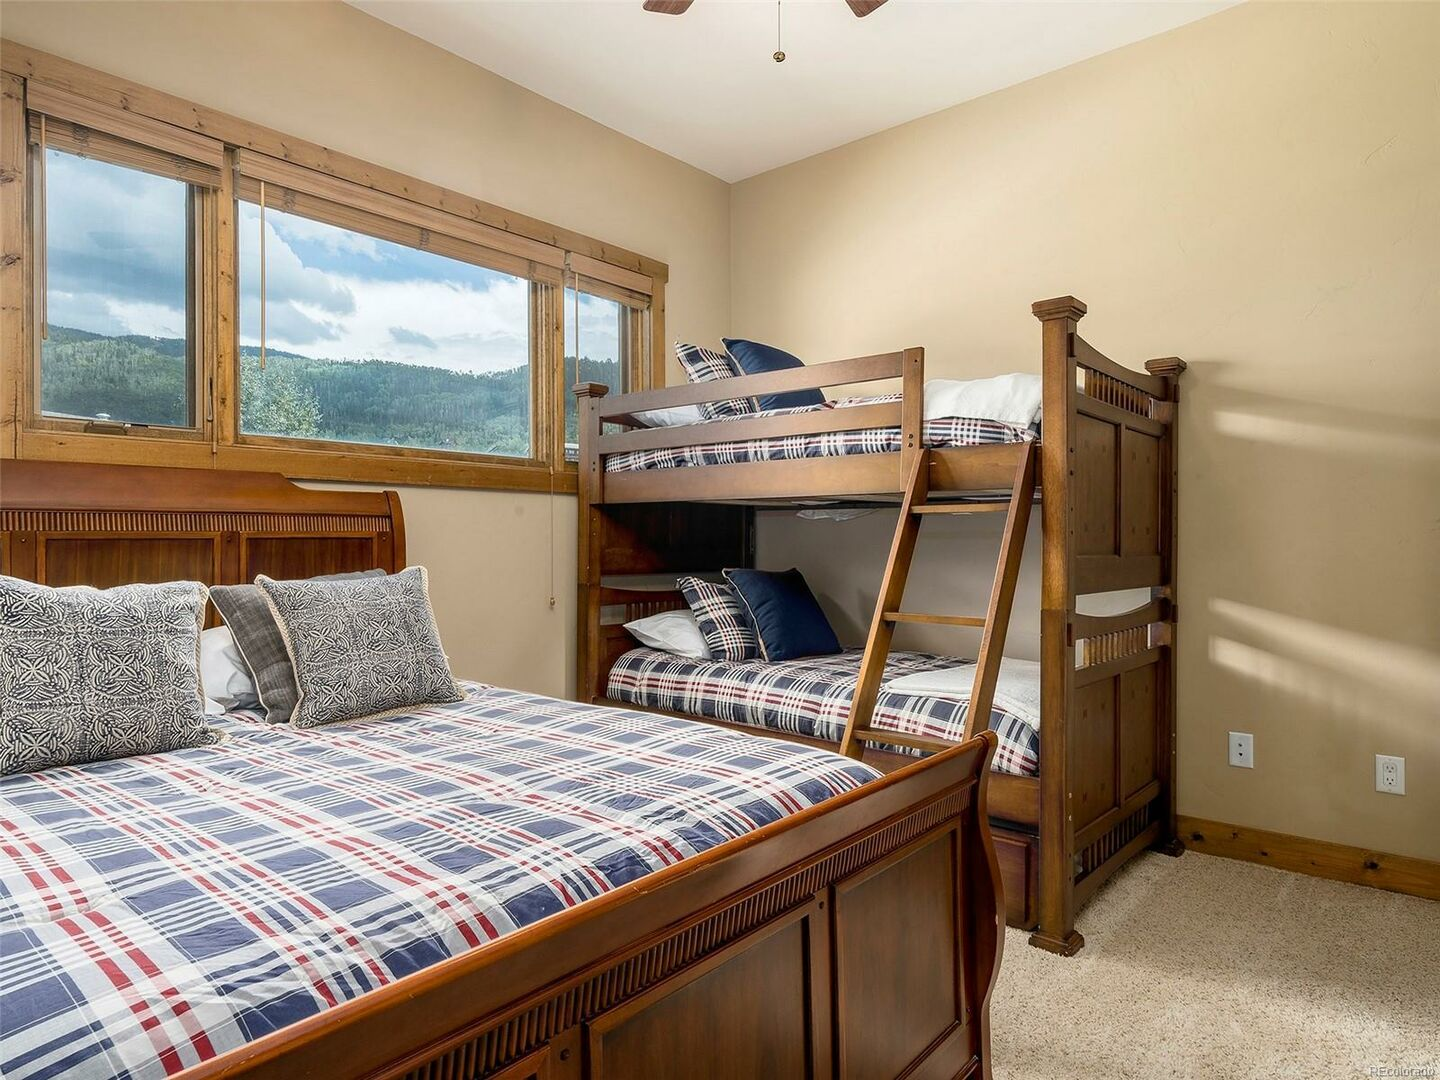 Bedroom with Bunk Bed, Large Bed, and Window.